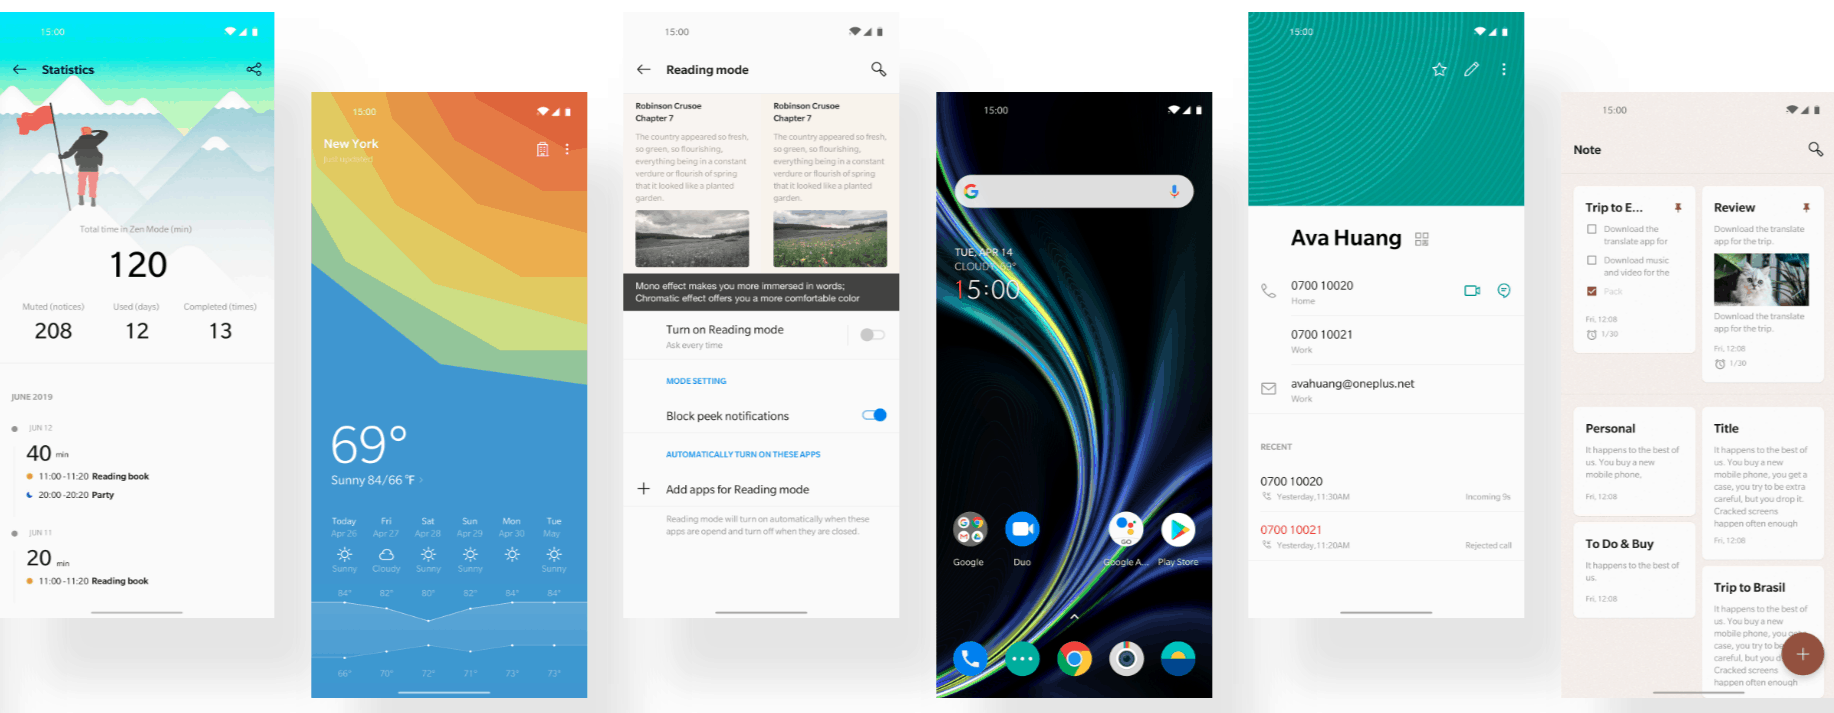 OnePlus 8 OxygenOS features 4